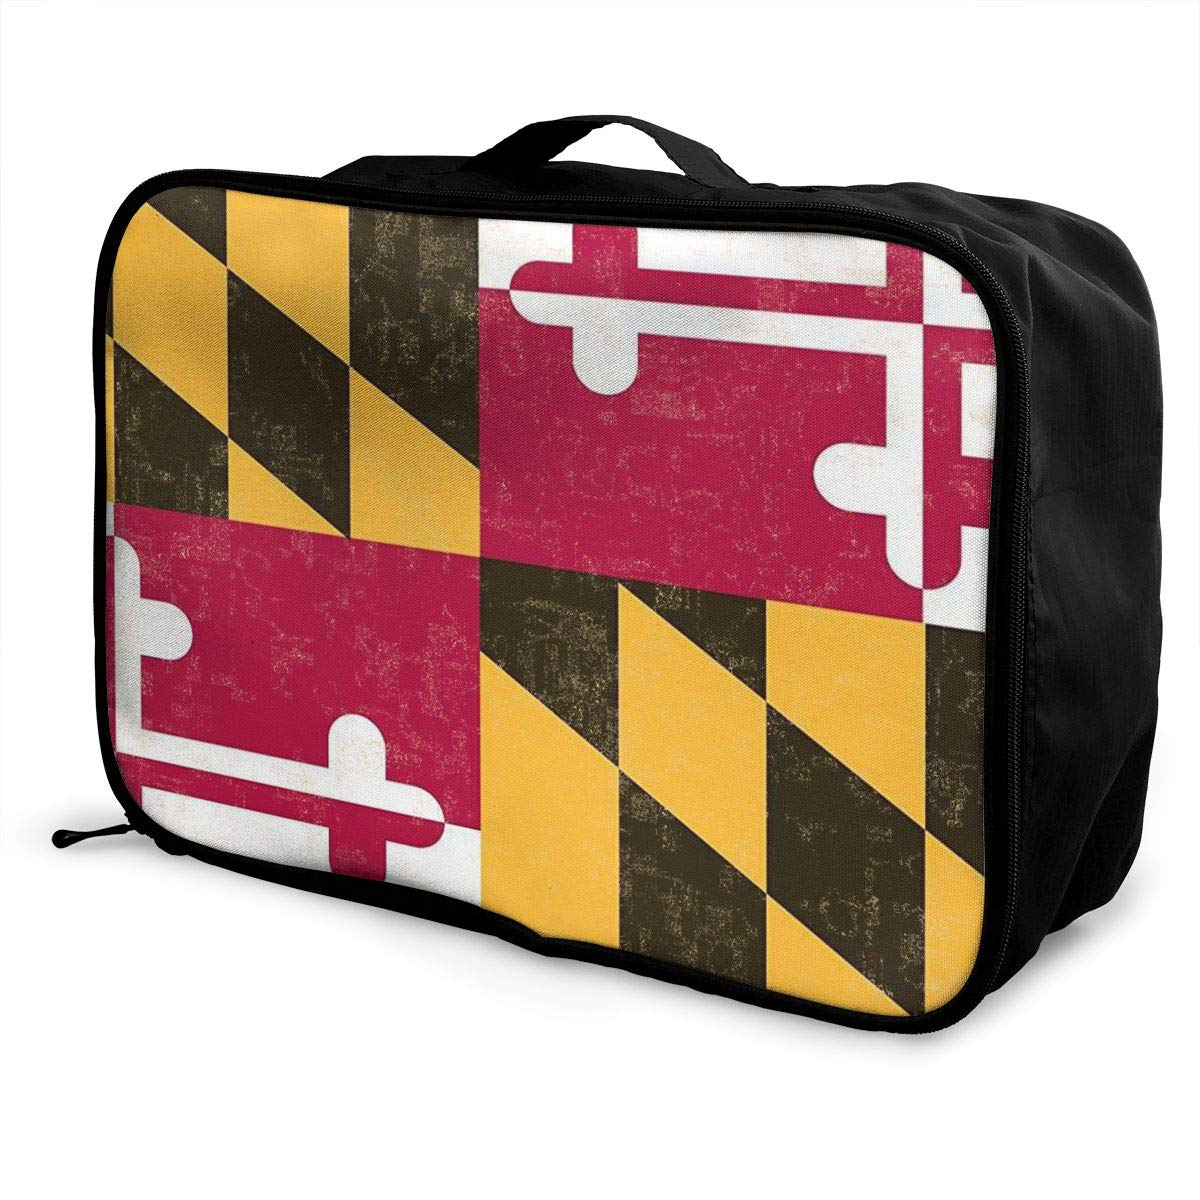 YueLJB Maryland State Flag Distressed Lightweight Large Capacity Portable Luggage Bag Travel Duffel Bag Storage Carry Luggage Duffle Tote Bag